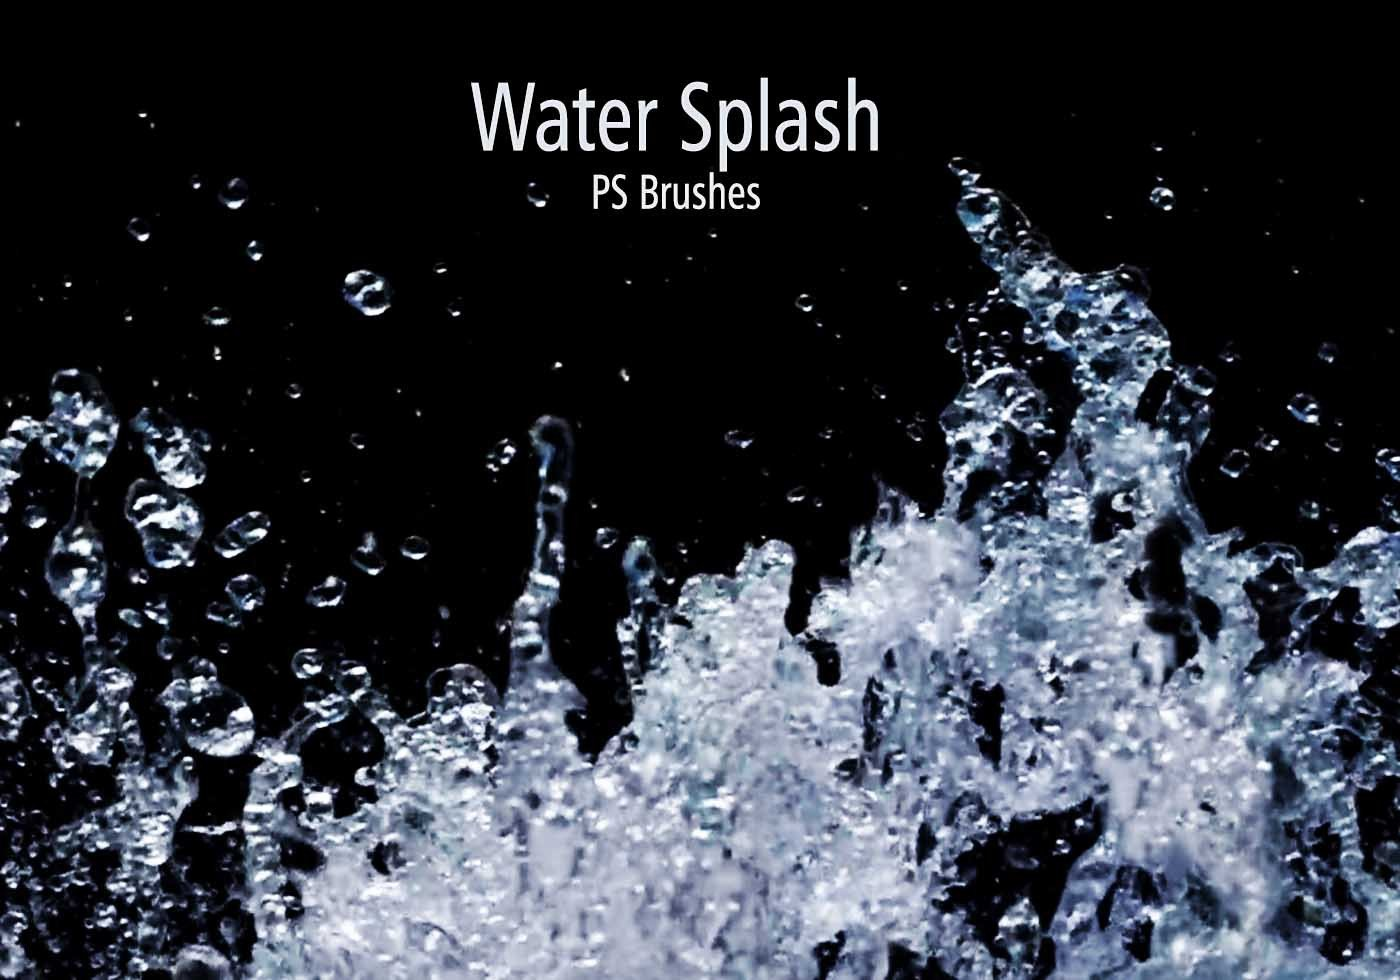 Water Splash Brush Photoshop 20 Water Splash Brushes Abr Vol 1 Free Shop Brushes